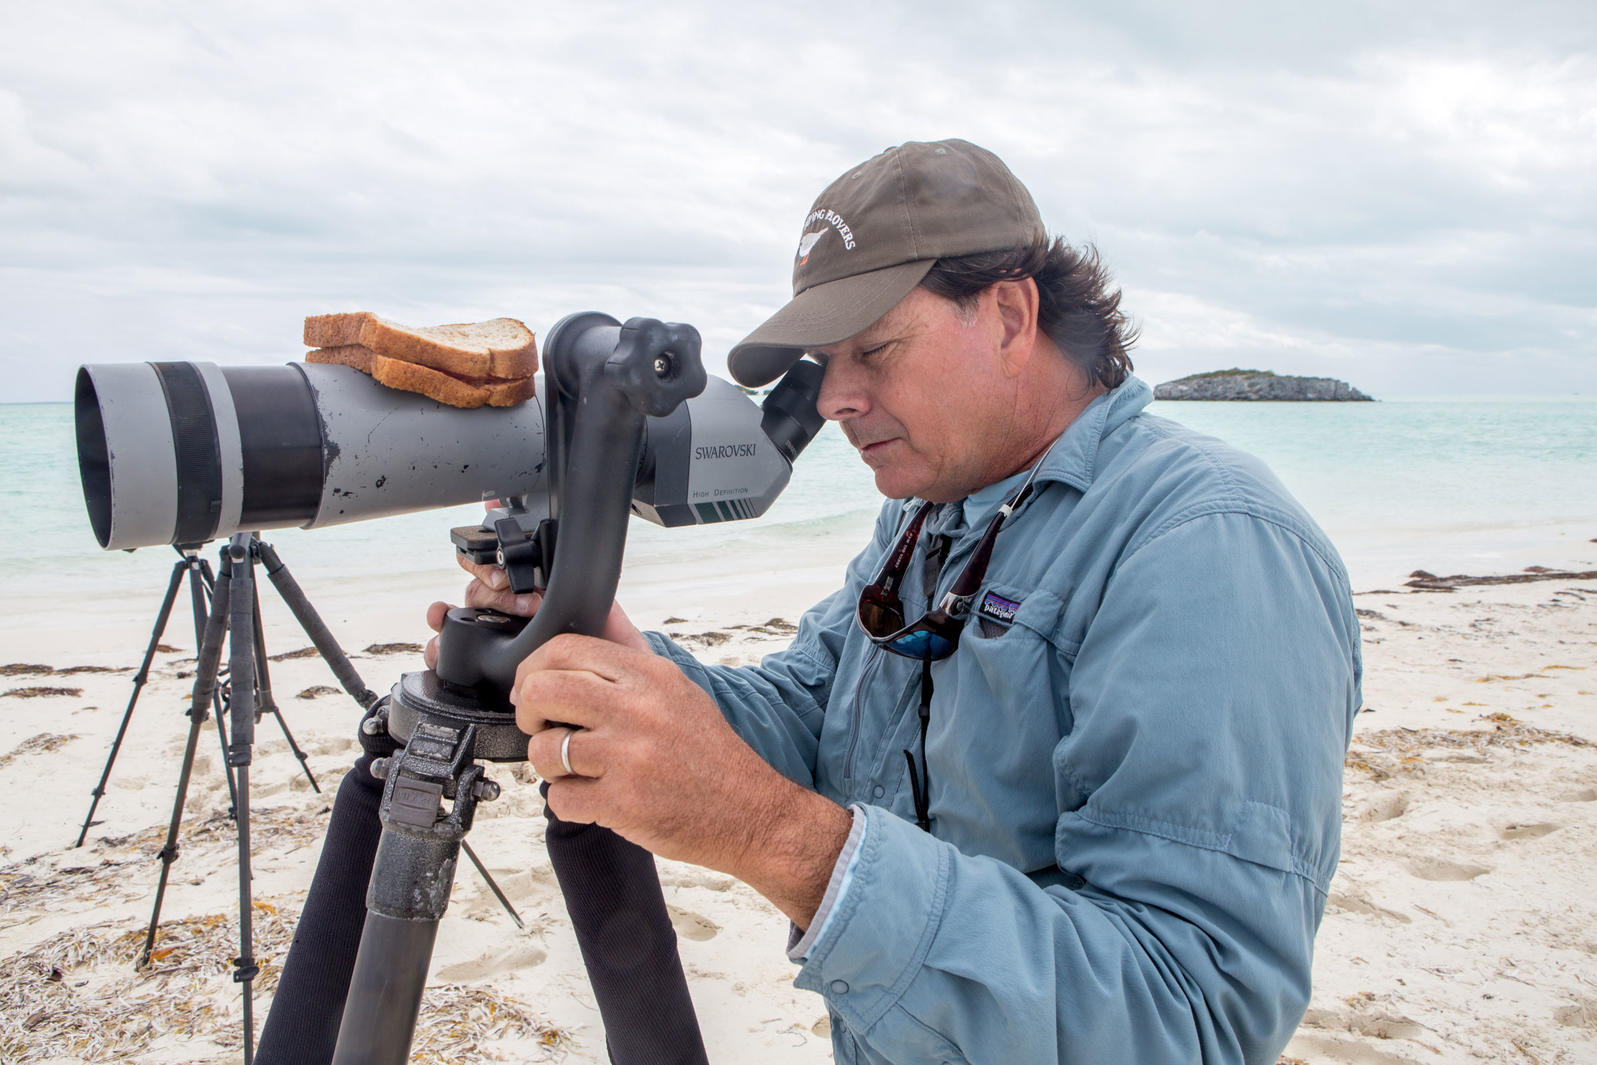 Walker Golder, Audubon Director of the Atlantic Flyway, uses a spotting scope as a plate for his PB&J during the international Piping Plover survey in the Bahamas. Camilla Cerea/Audubon